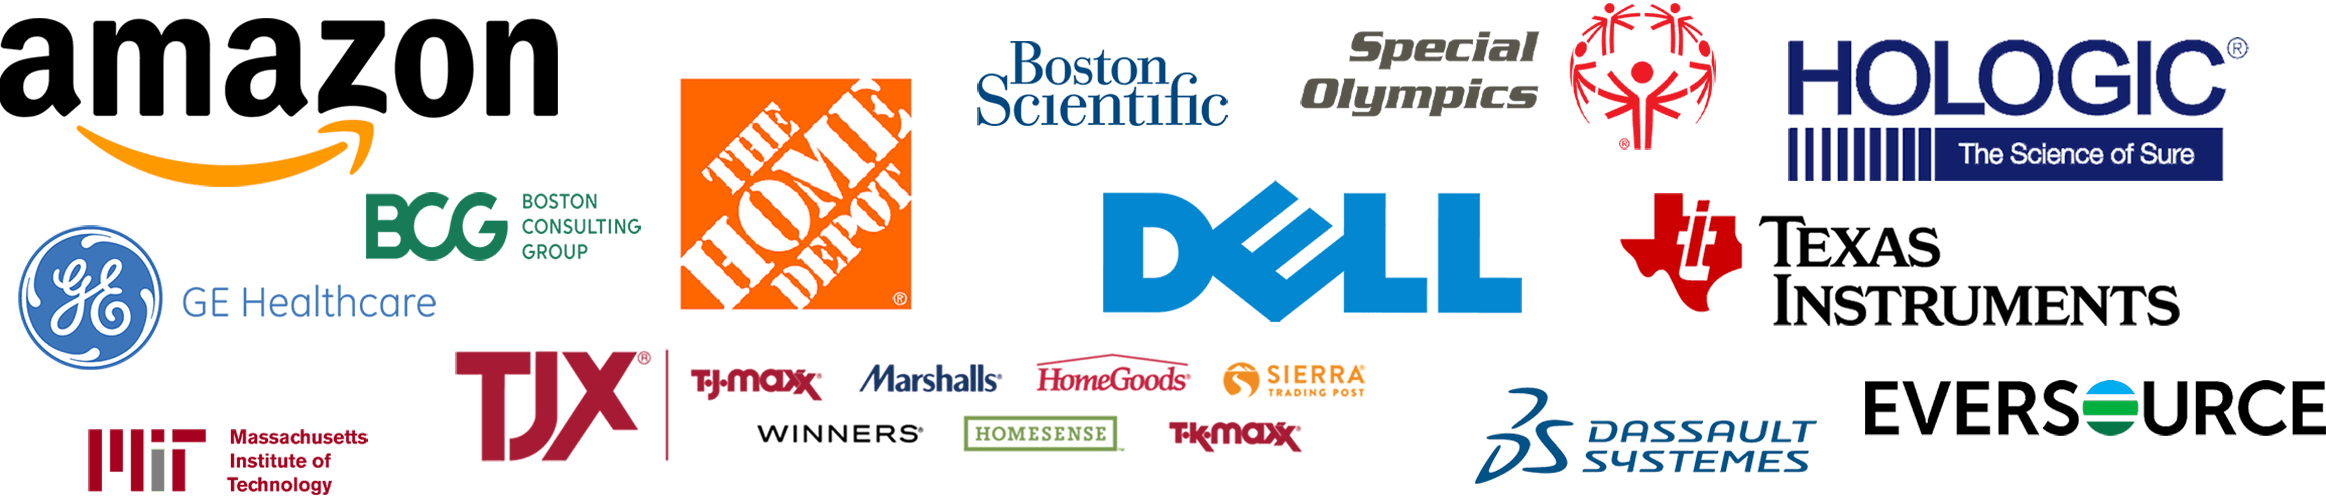 Company Logos that have run events with Half Axe; Amazon, Dell, TJX, etc.